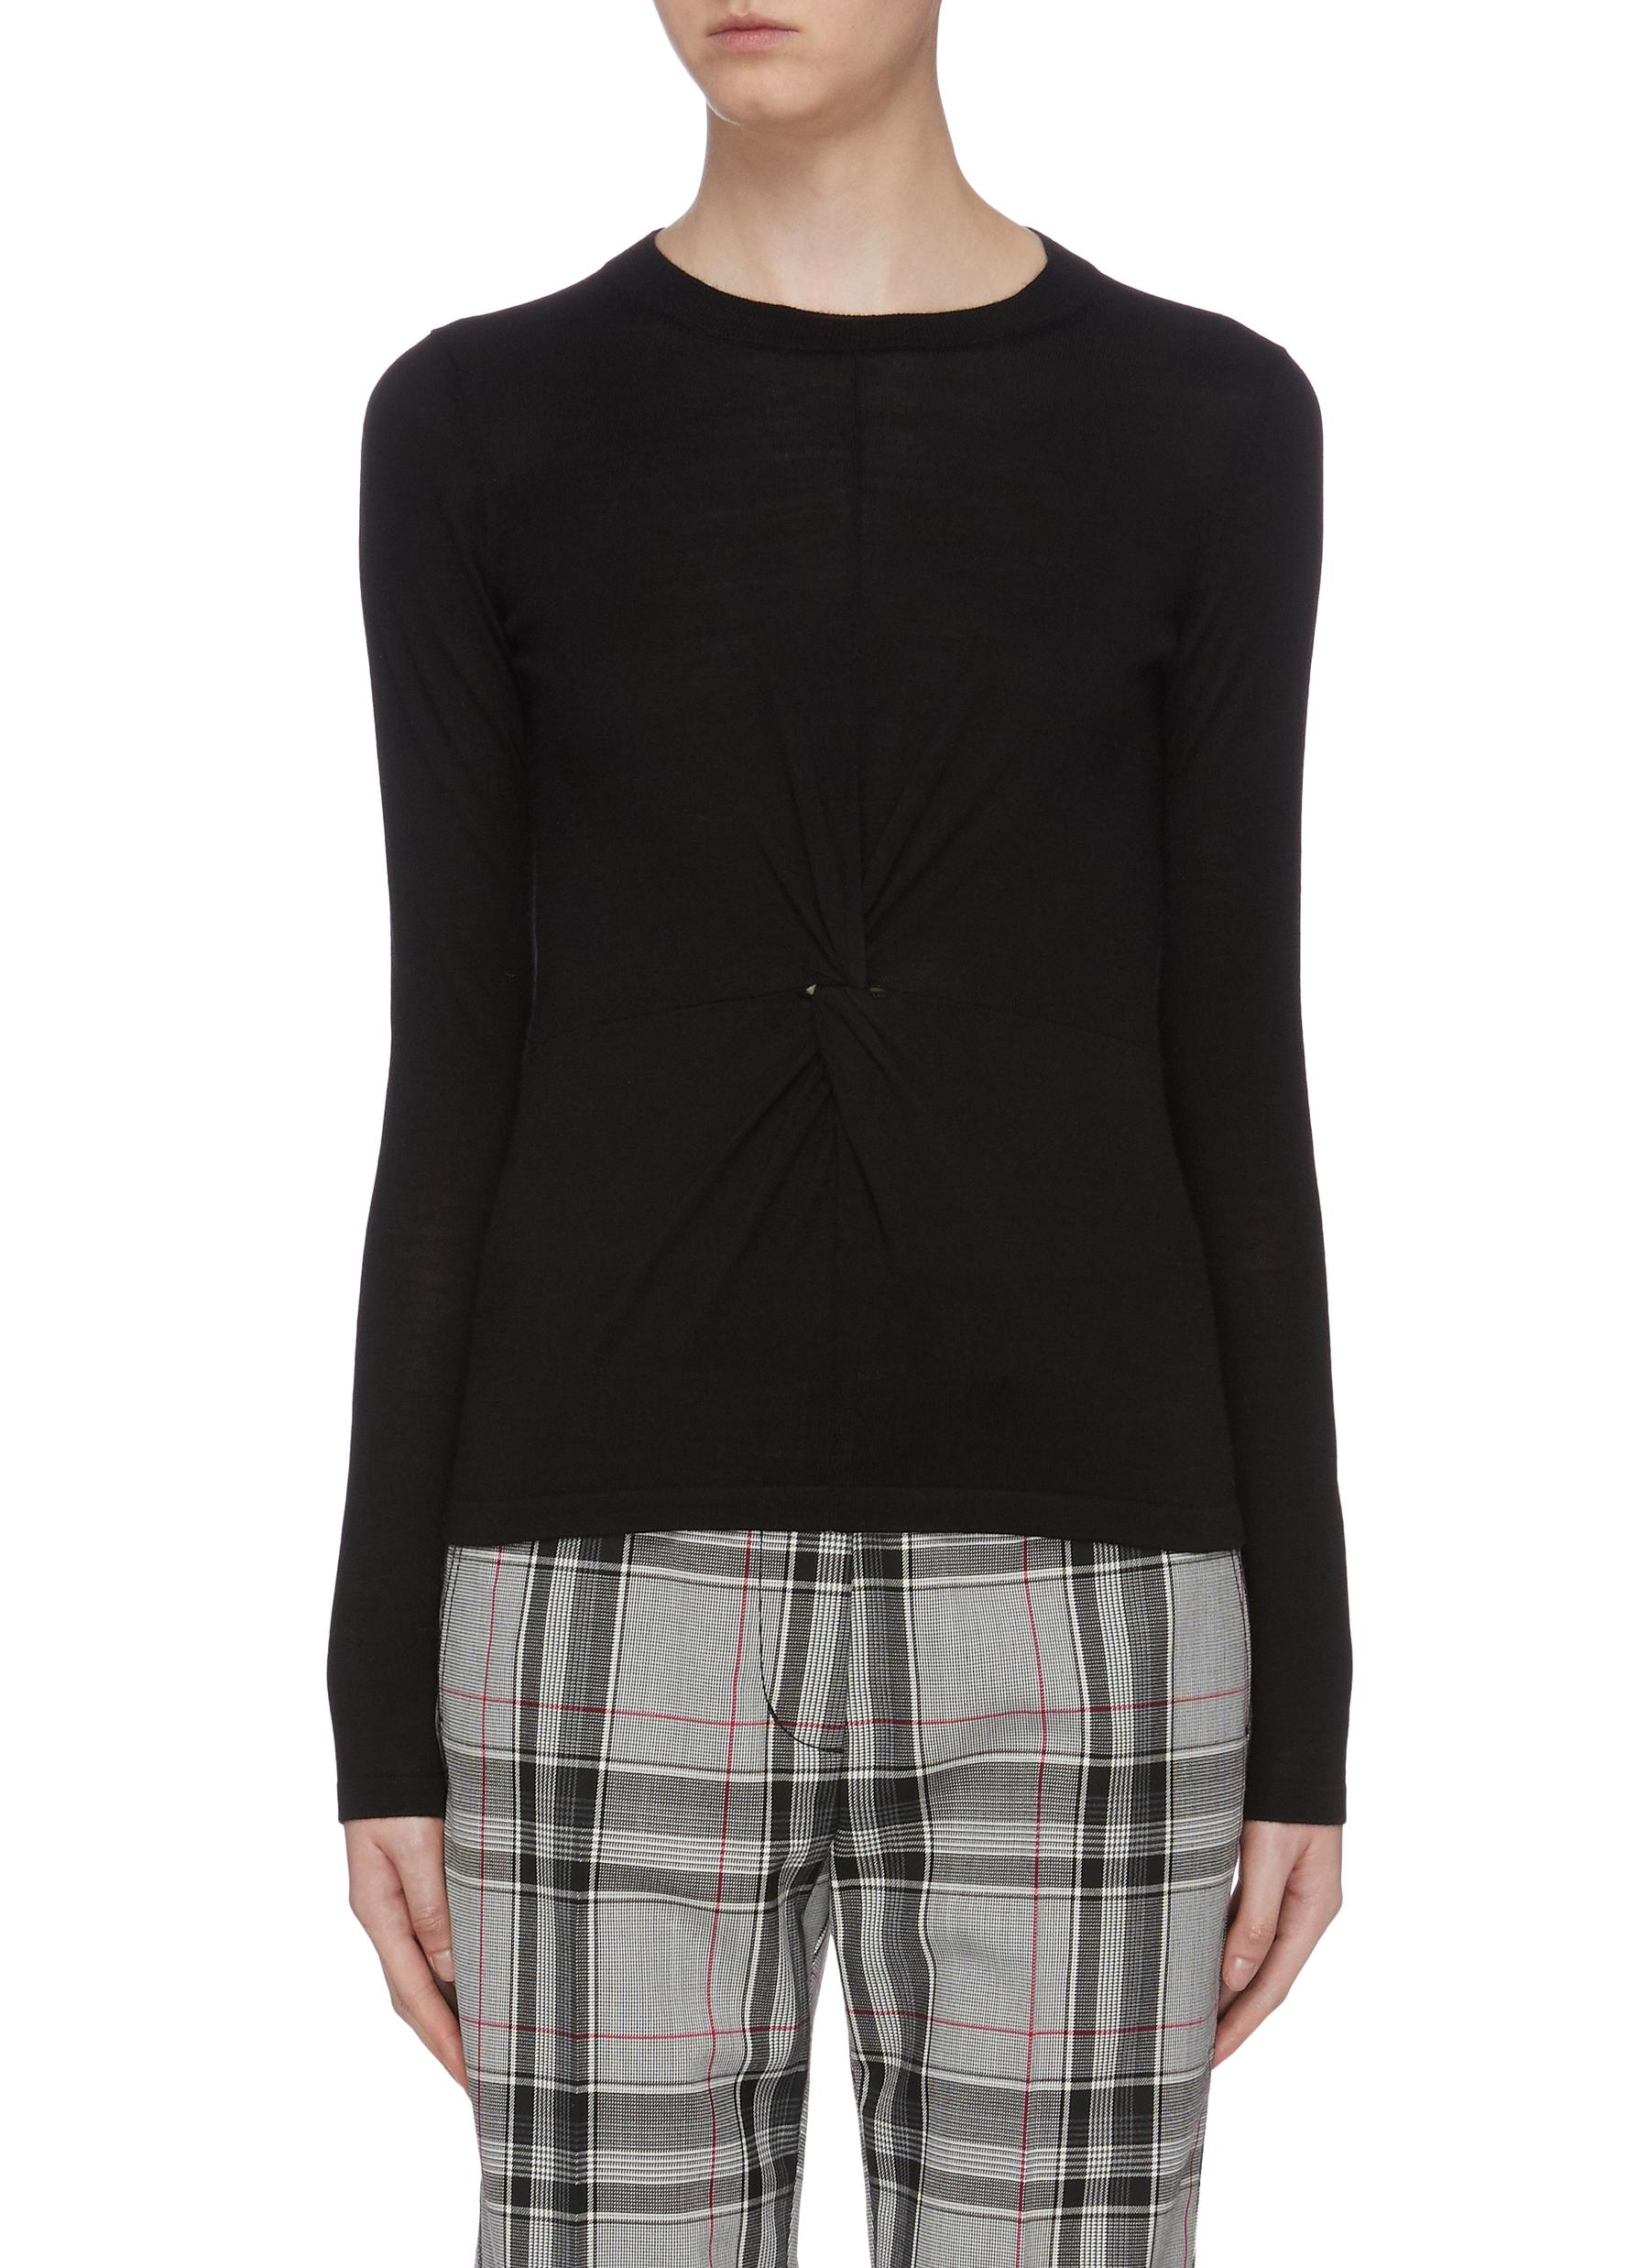 Twist front knit top by Vince